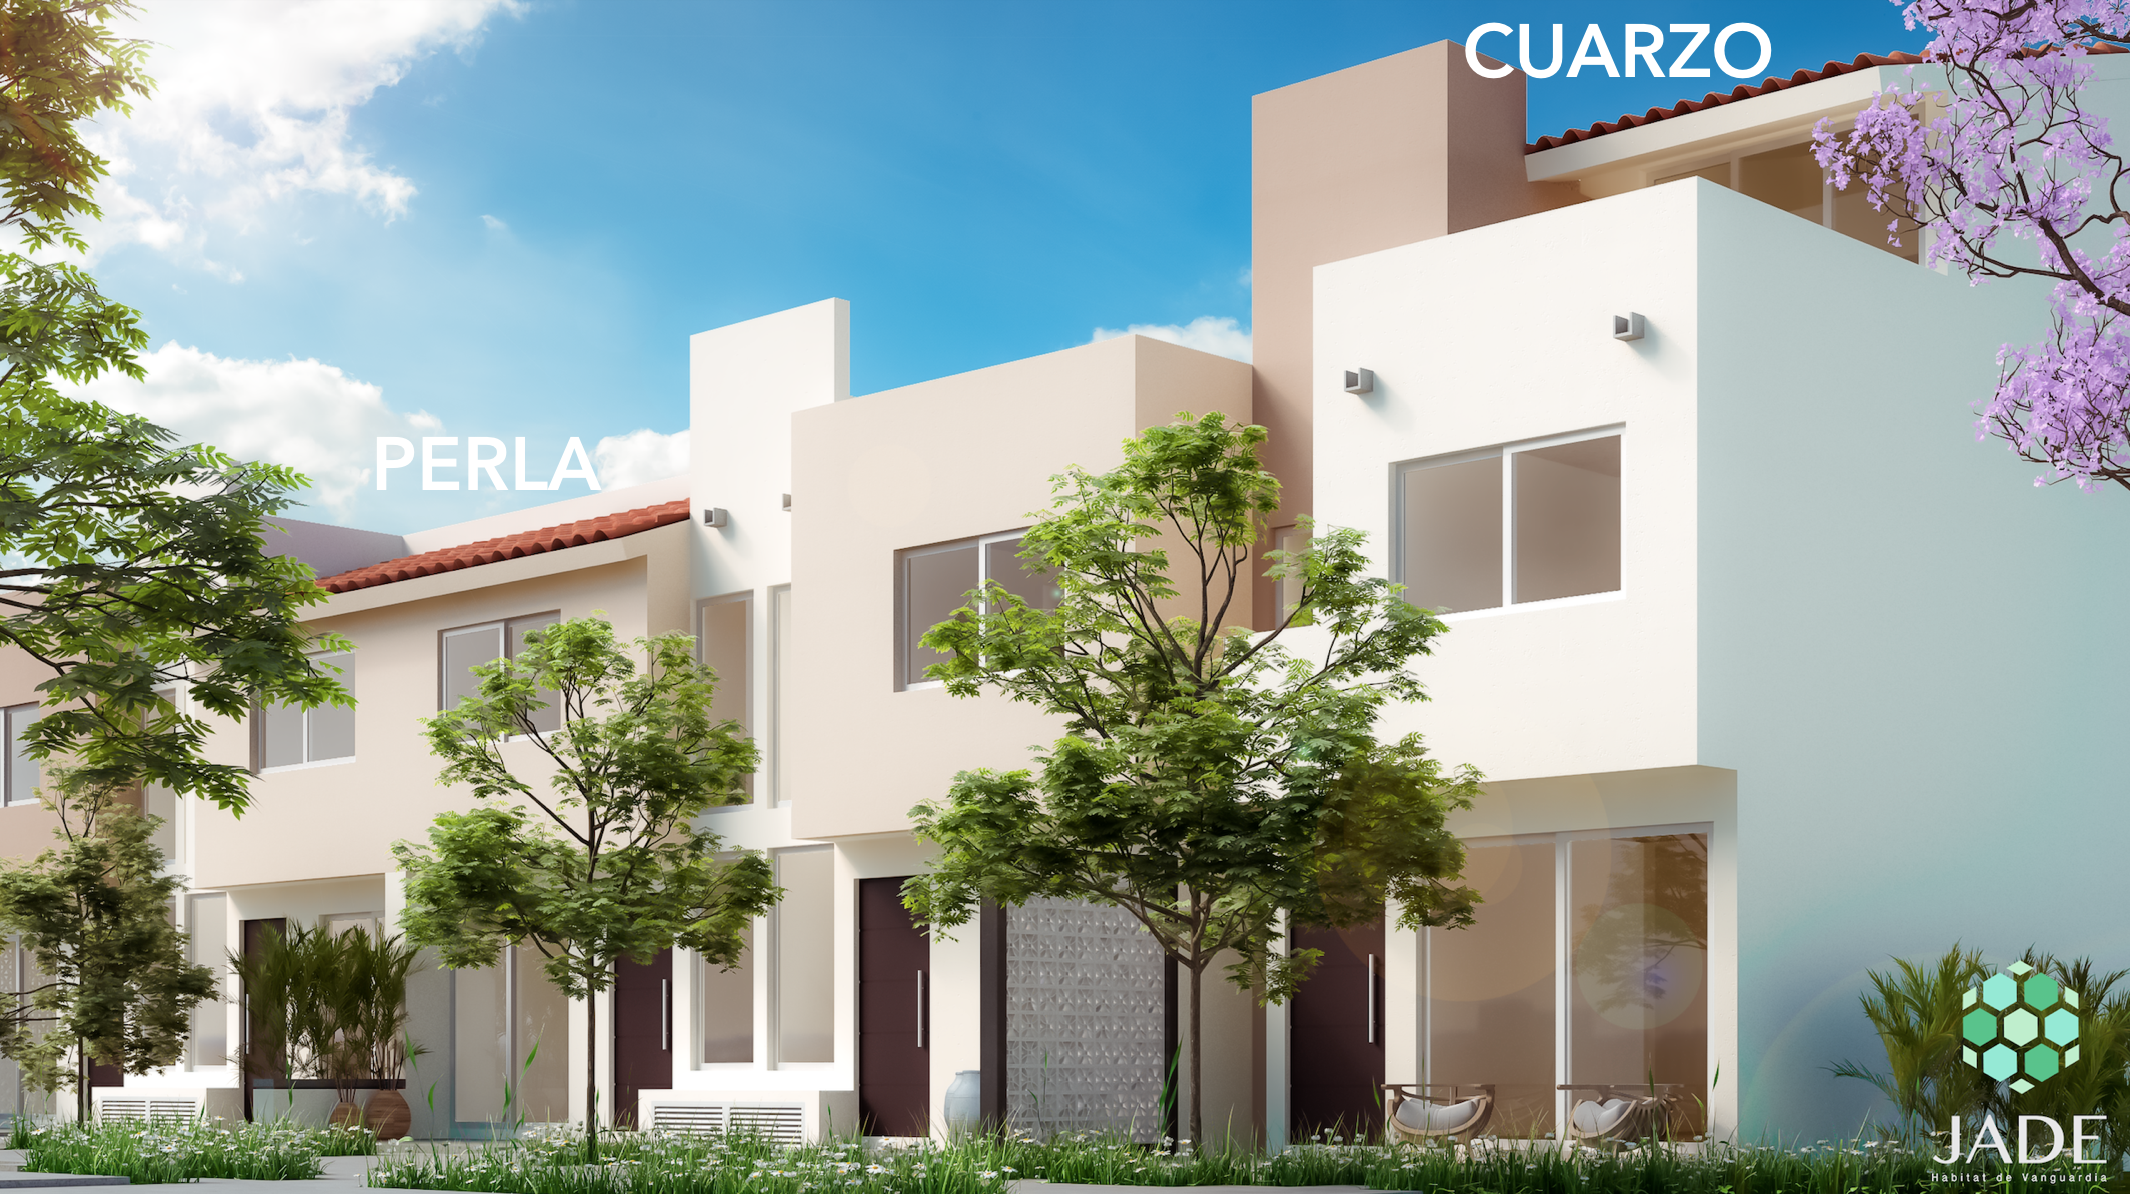 Casas PERLA Y CUARZO (disponible)